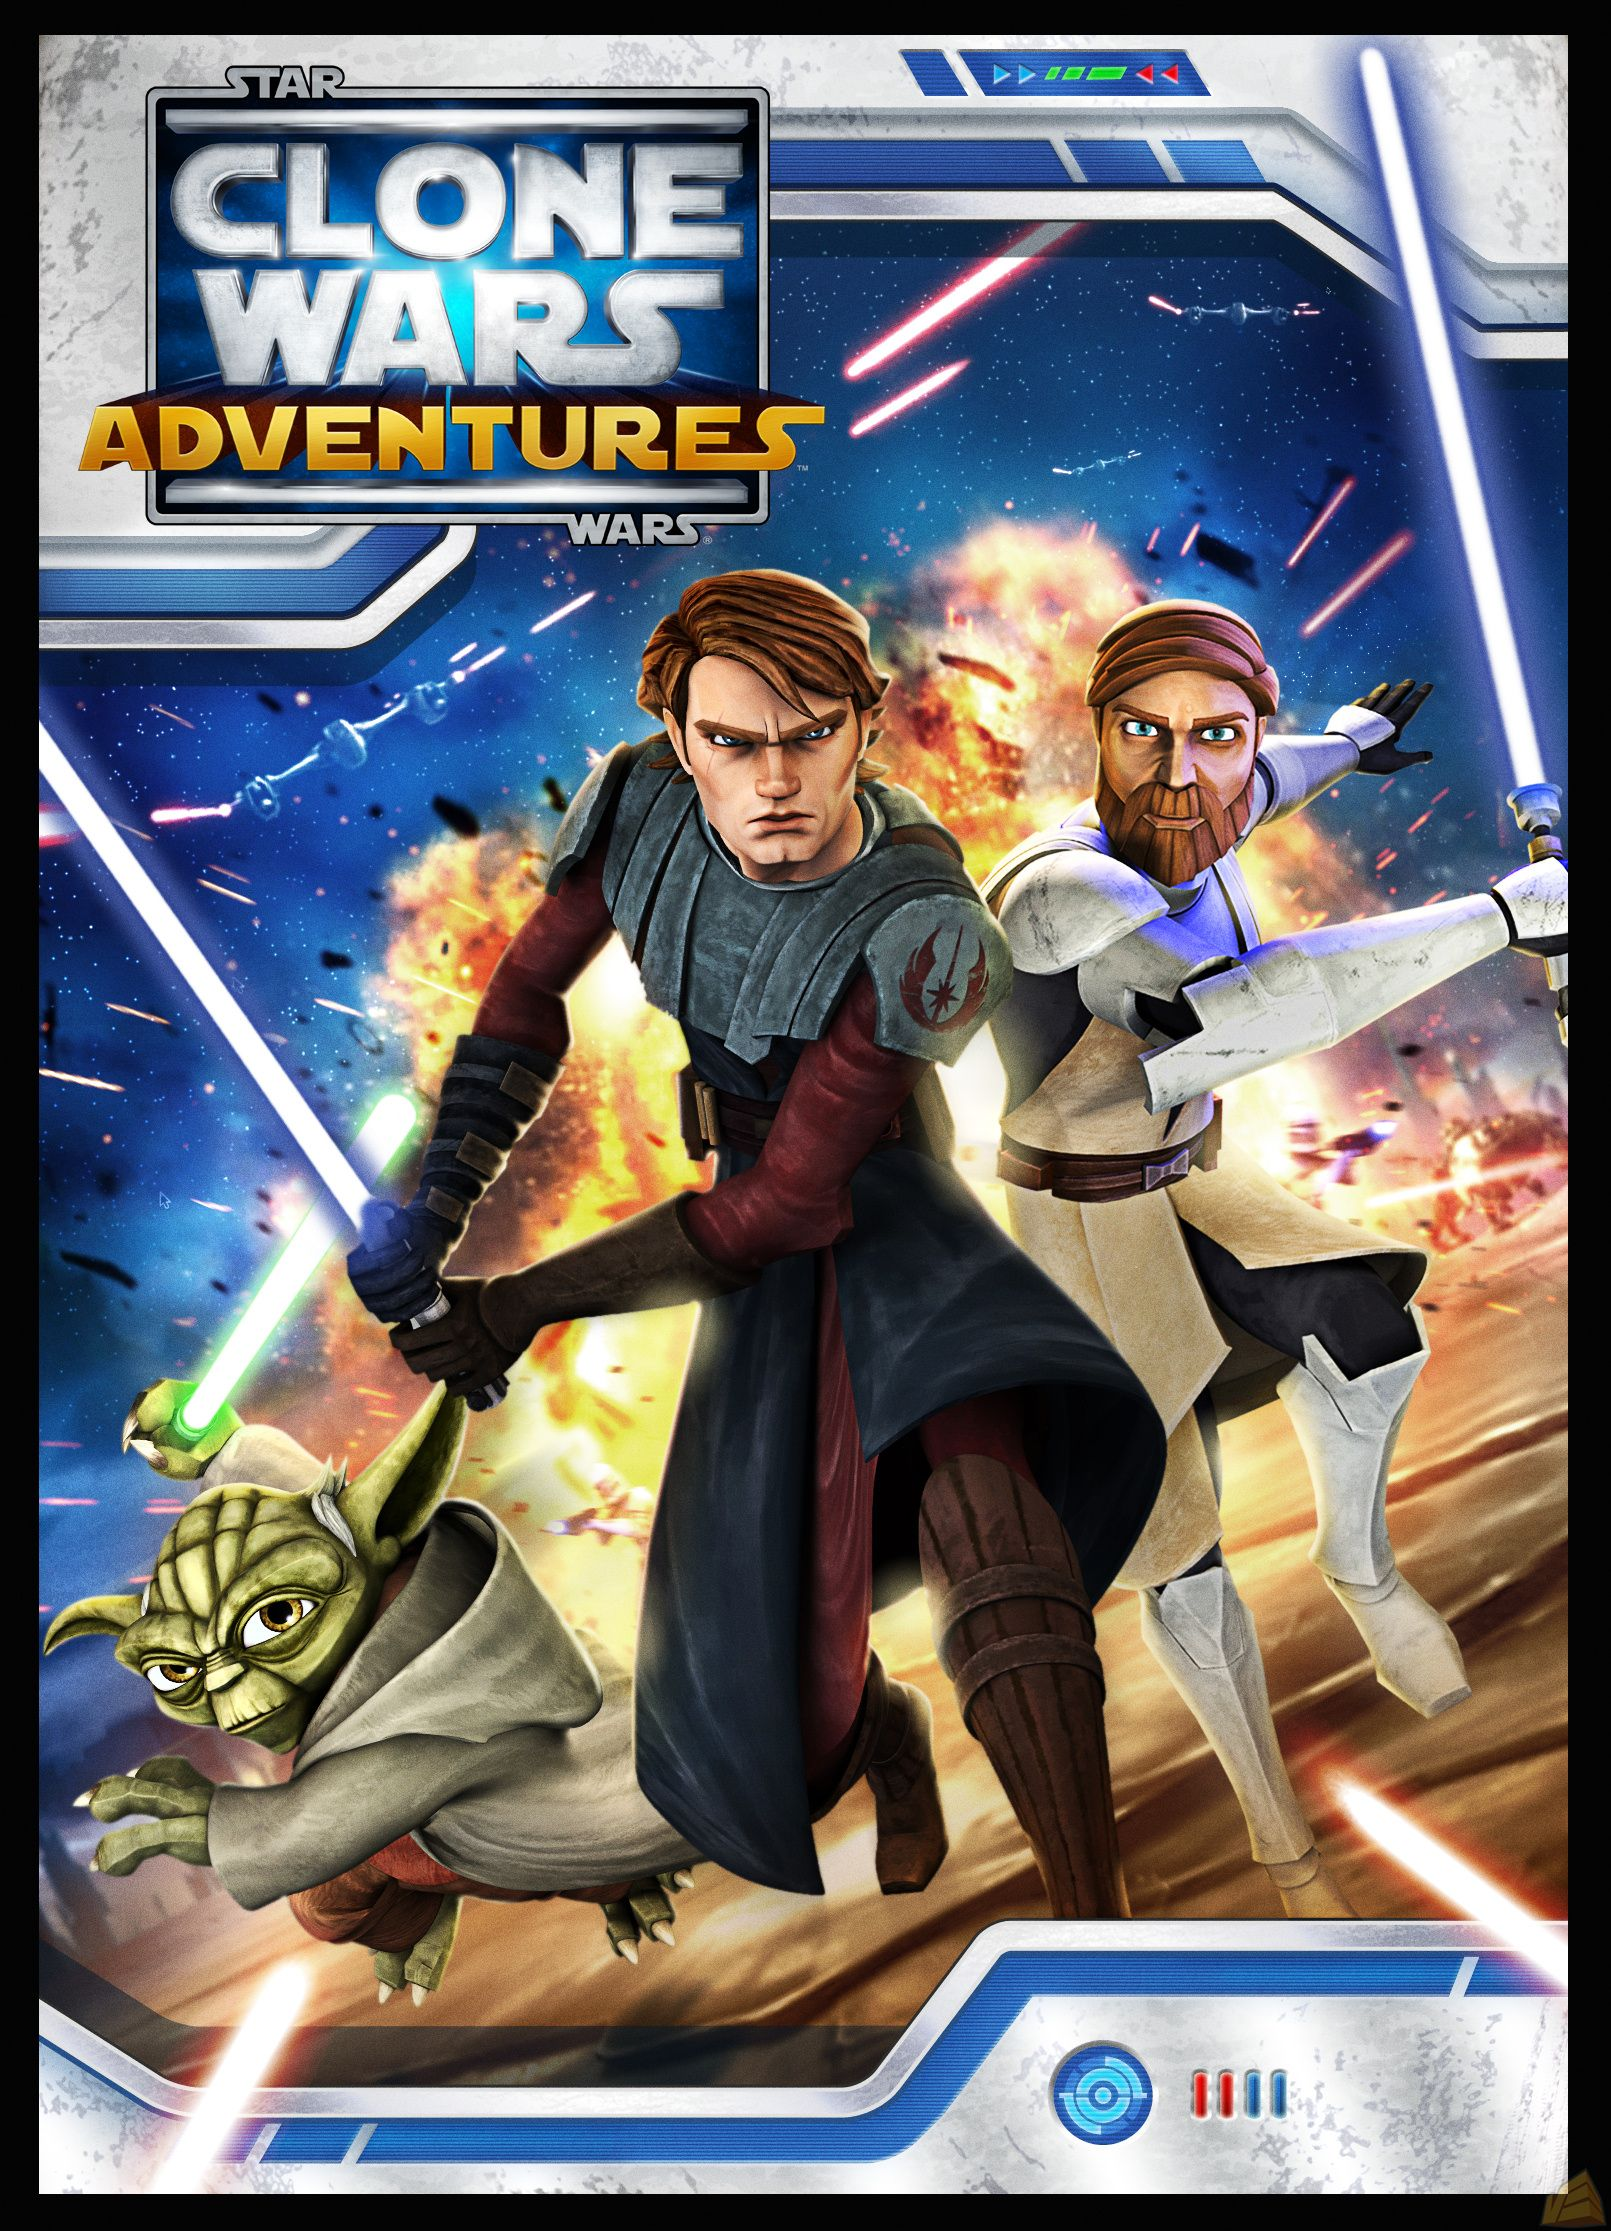 Star Wars: Clone Wars Adventures (видеоигра)